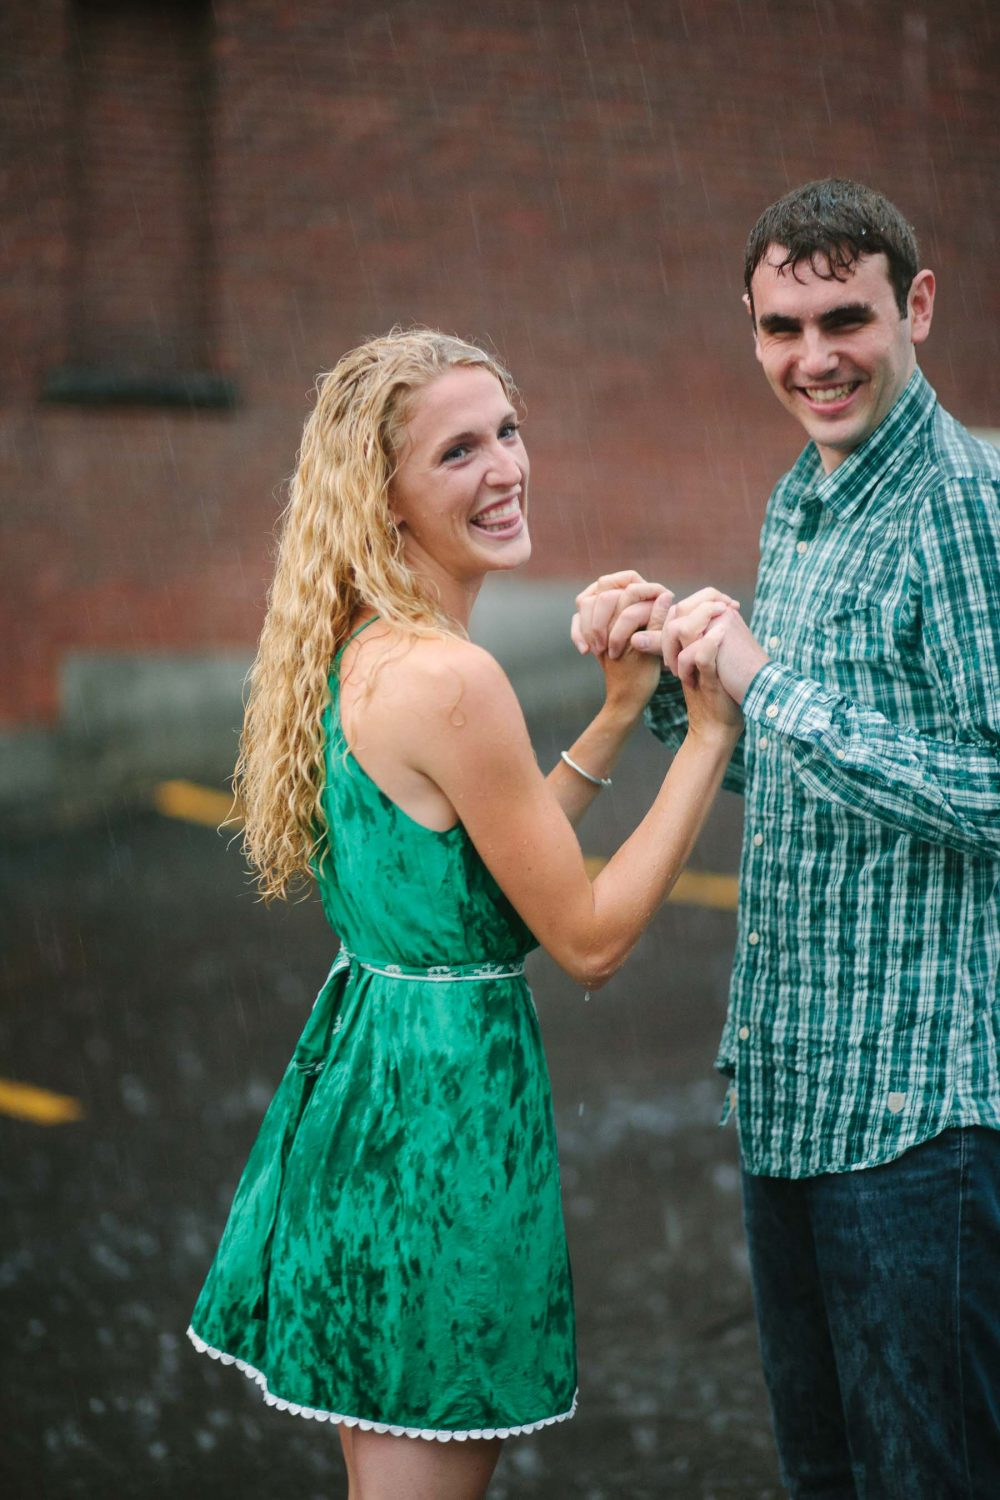 017-summer-manchester-nh-rain-engagement